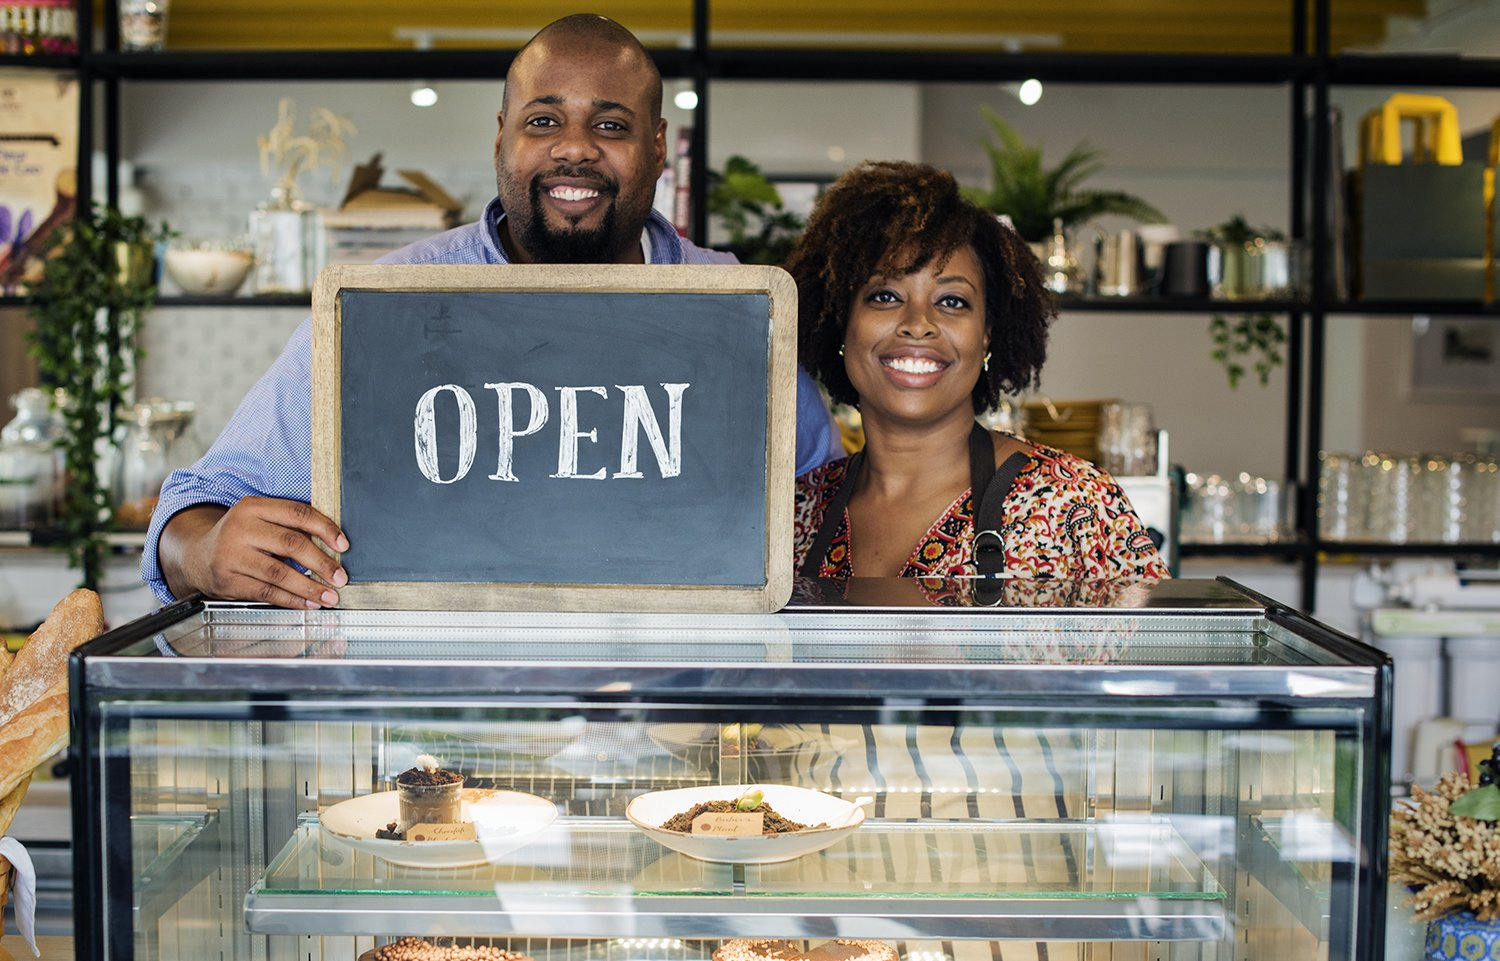 Betting Big on Small Businesses